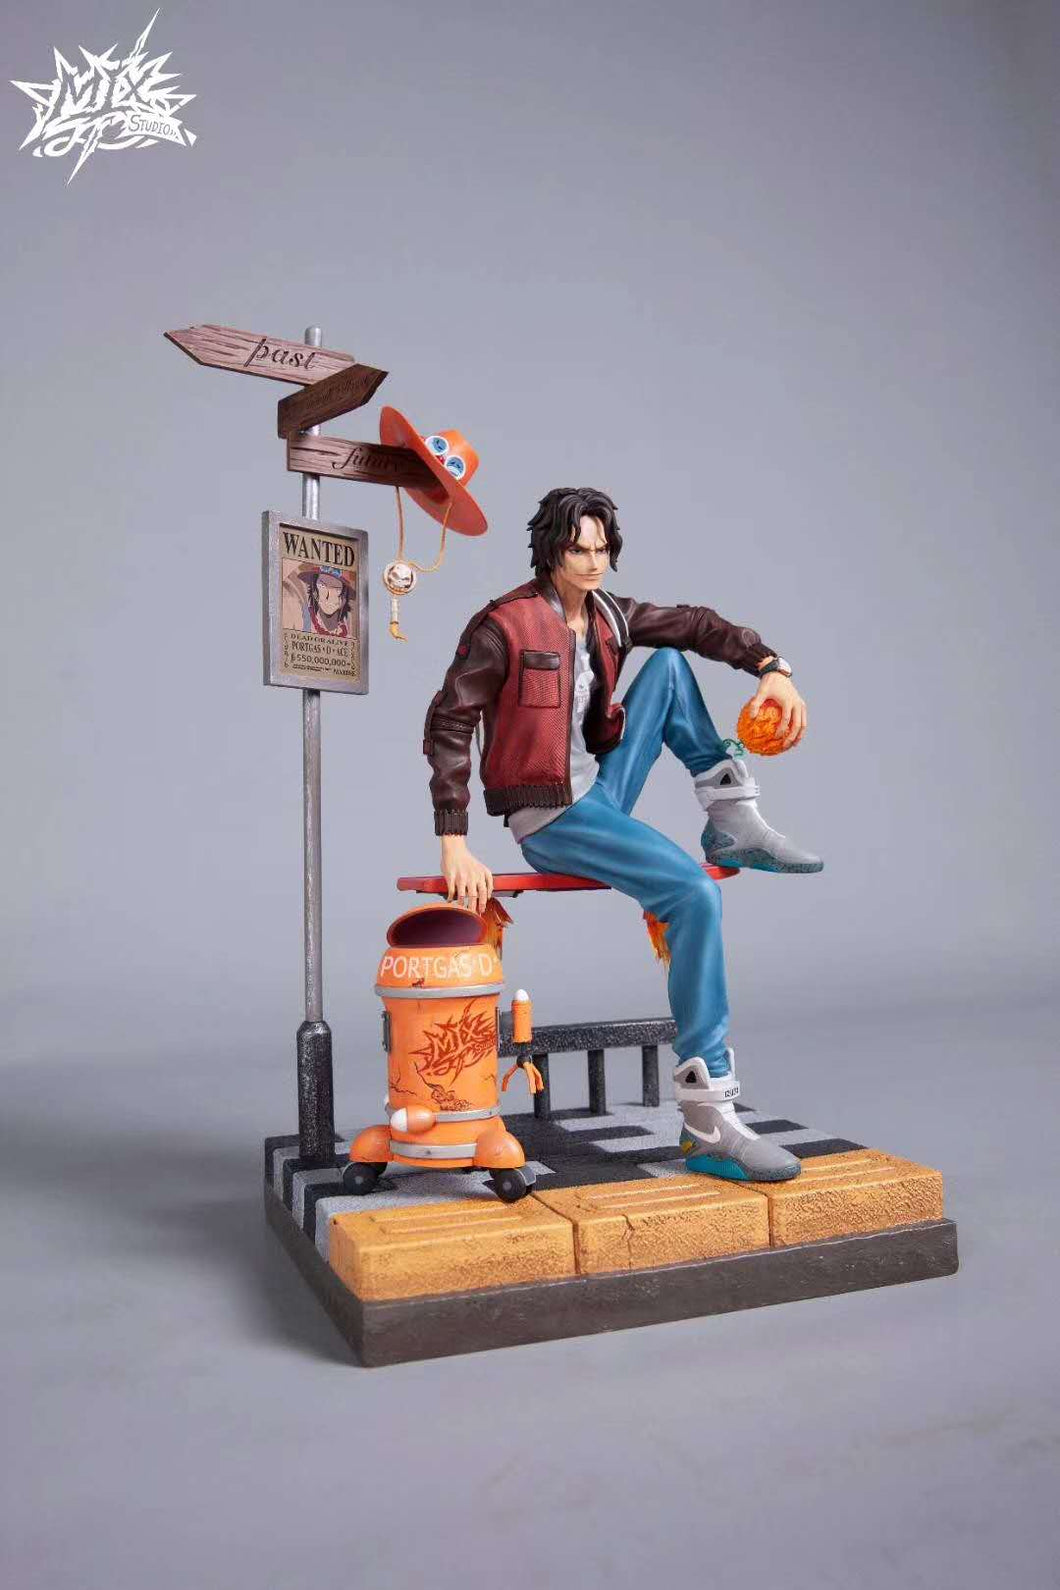 1/6 Scale Street Trend Portgas·D· Ace - ONE PIECE Resin Statue - MIX Studios [In Stock] - FavorGK